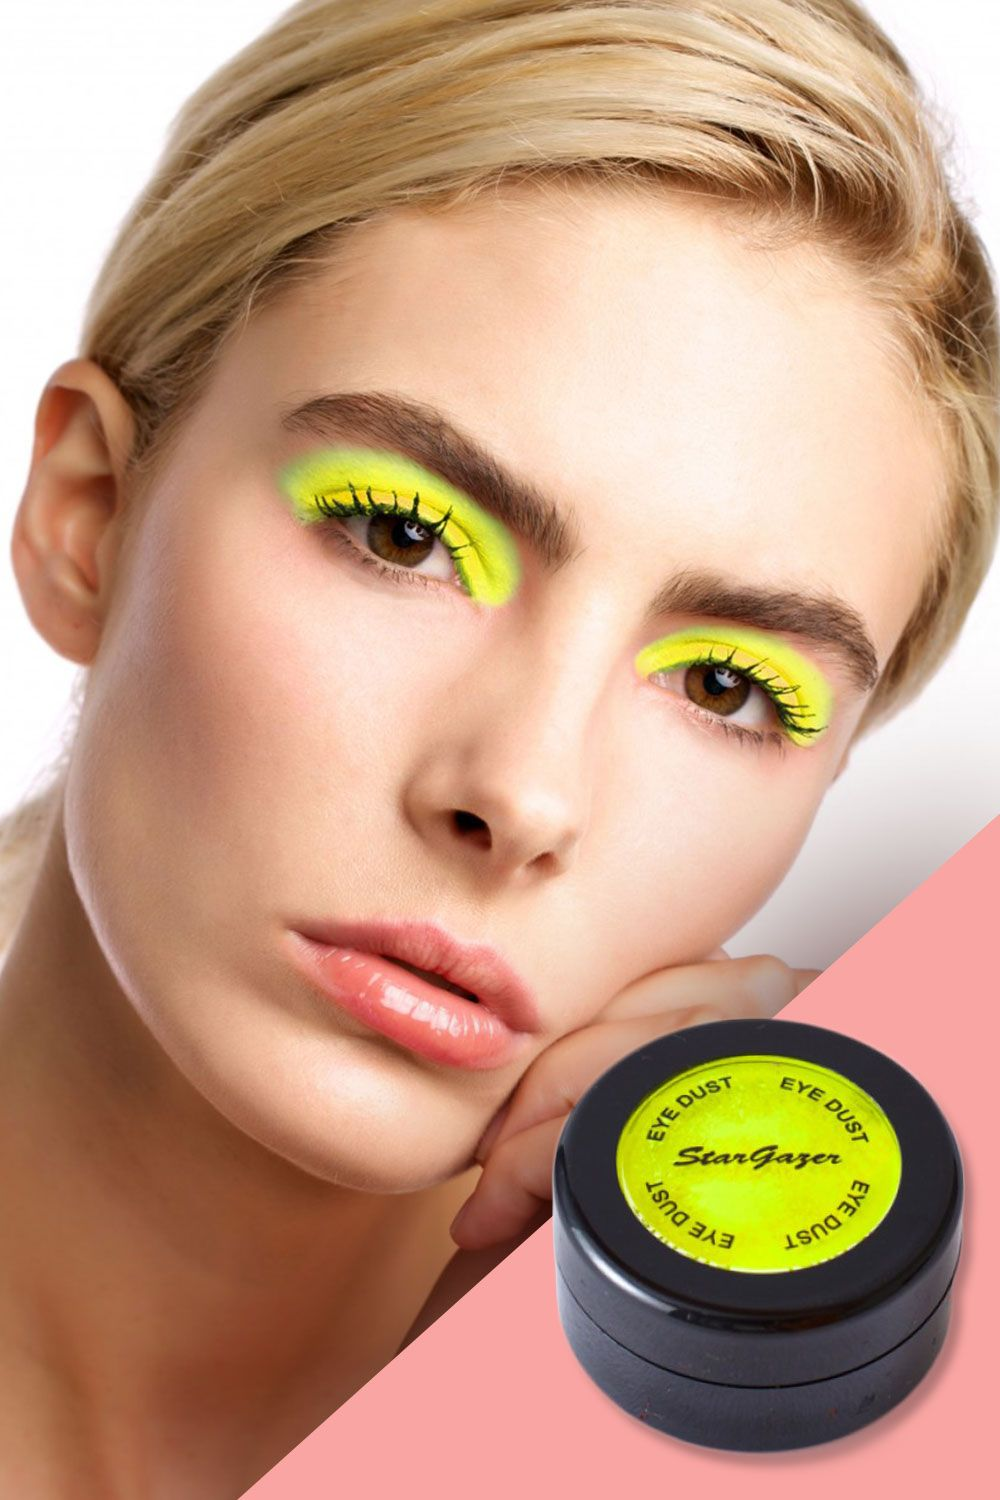 """<p>Enough with the damn glowsticks. Make a neon statement with your lids by smudging on this UV neon shadow (if you're color-shy, make it a light dusting). In the daylight it'll be a bright pop of color—and should you find yourself under a blacknight by night, the florescent pigments will keep the dance floor lit. It comes in every color of the rainbow, to boot.</p><p><br></p><p>Stargazer Radiate UV Neon Loose Shadow, $10; <a href=""""http://www.dollskill.com/stargazer-radiate-uv-neon-loose-eyeshadow.html"""" target=""""_blank"""">dollskill.com</a>.</p>"""